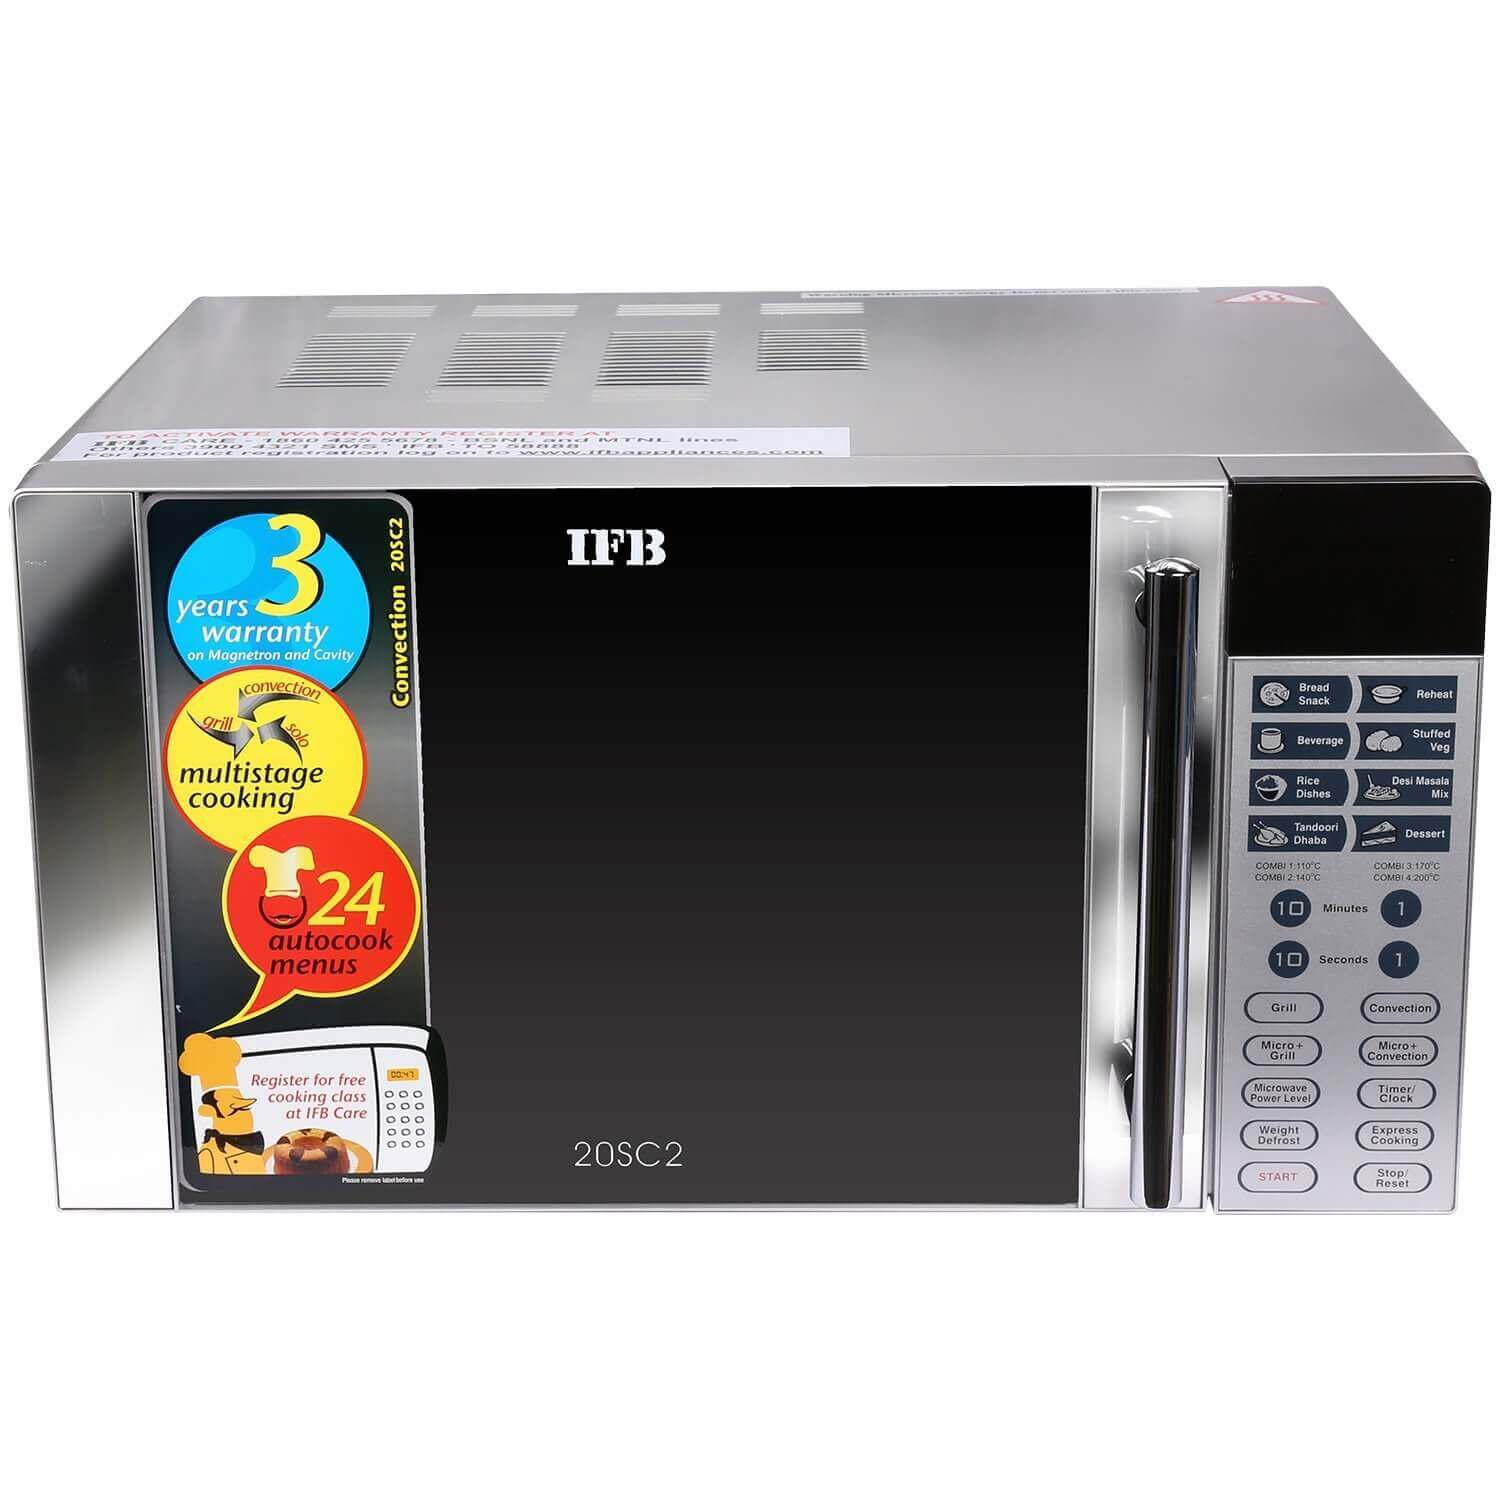 Best Convection Microwave Oven In India 2019